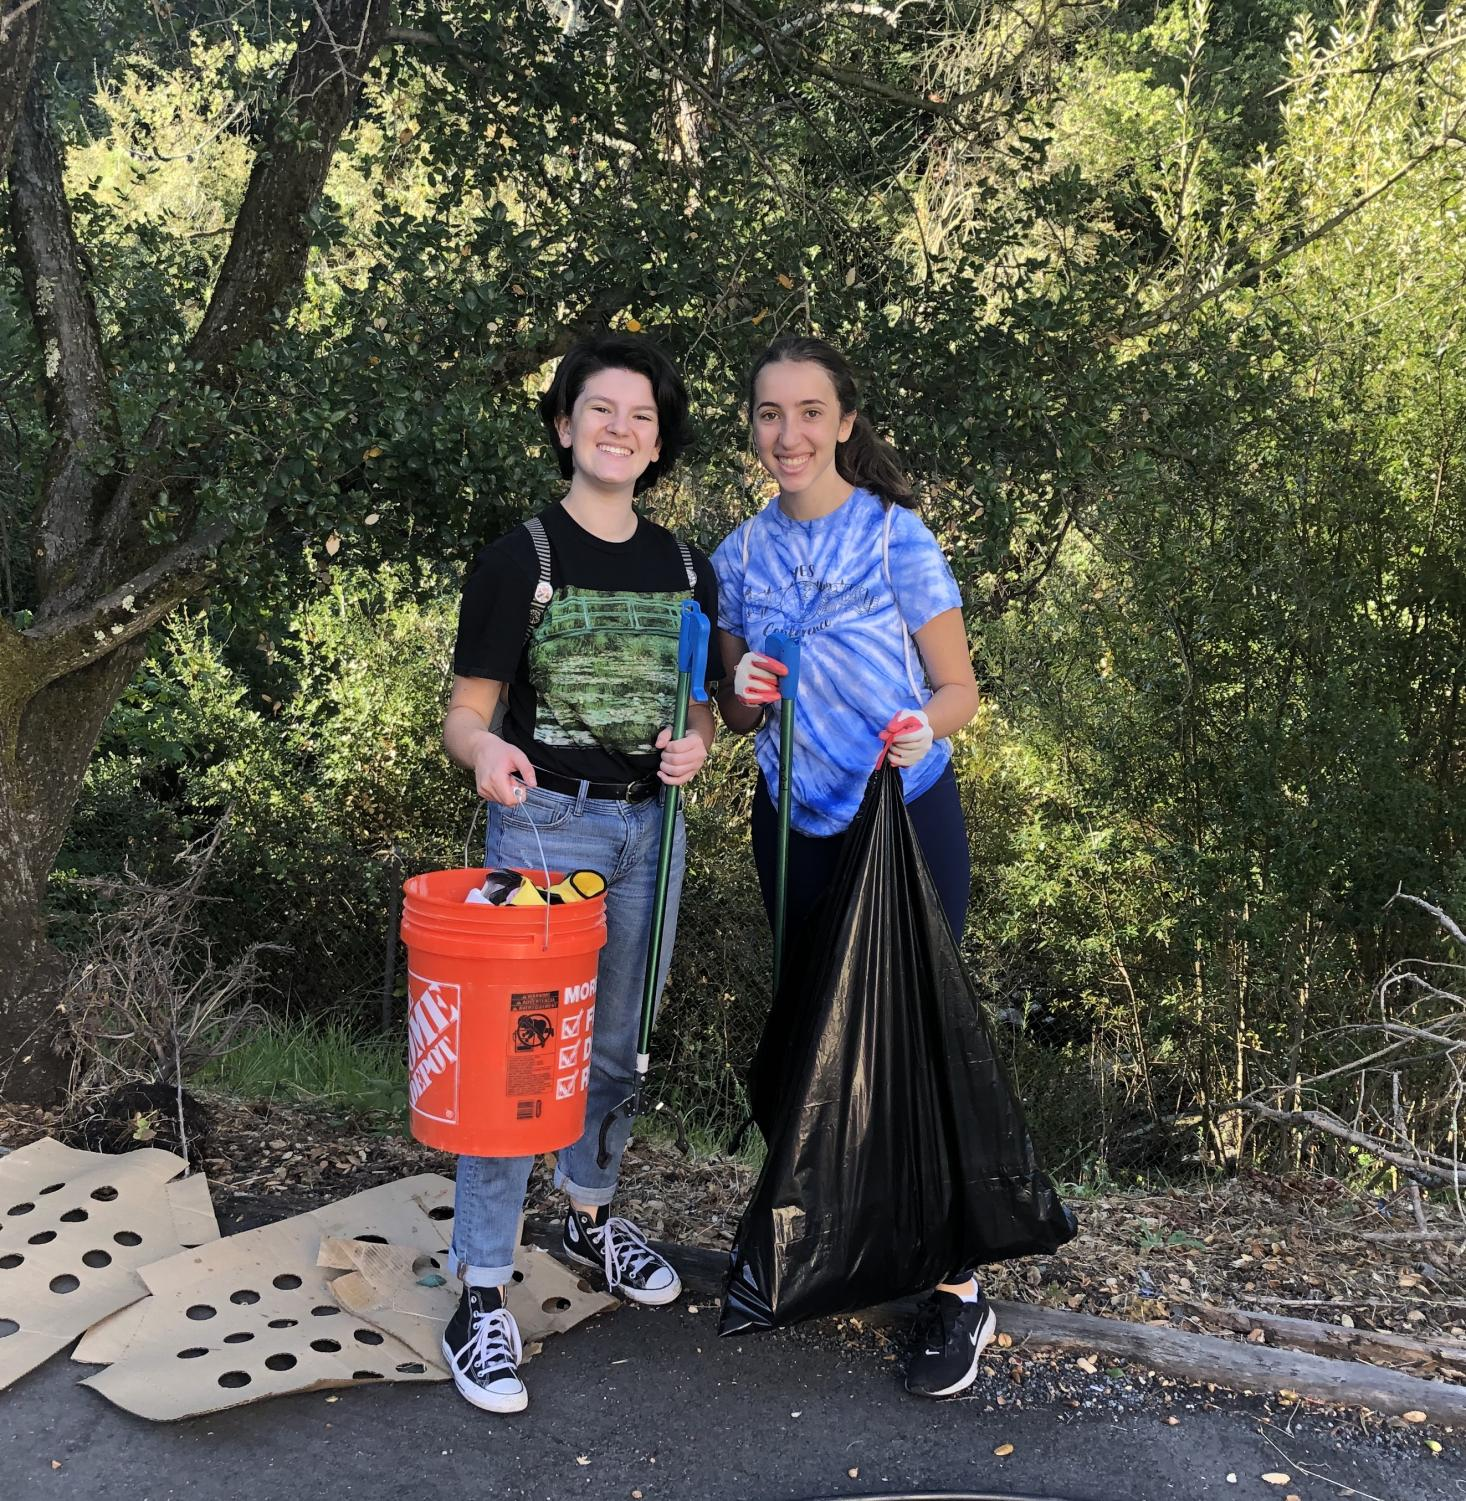 Sophomores Abby White (left) and Rebecca Libby (right) pose for a picture while helping to pick up trash.